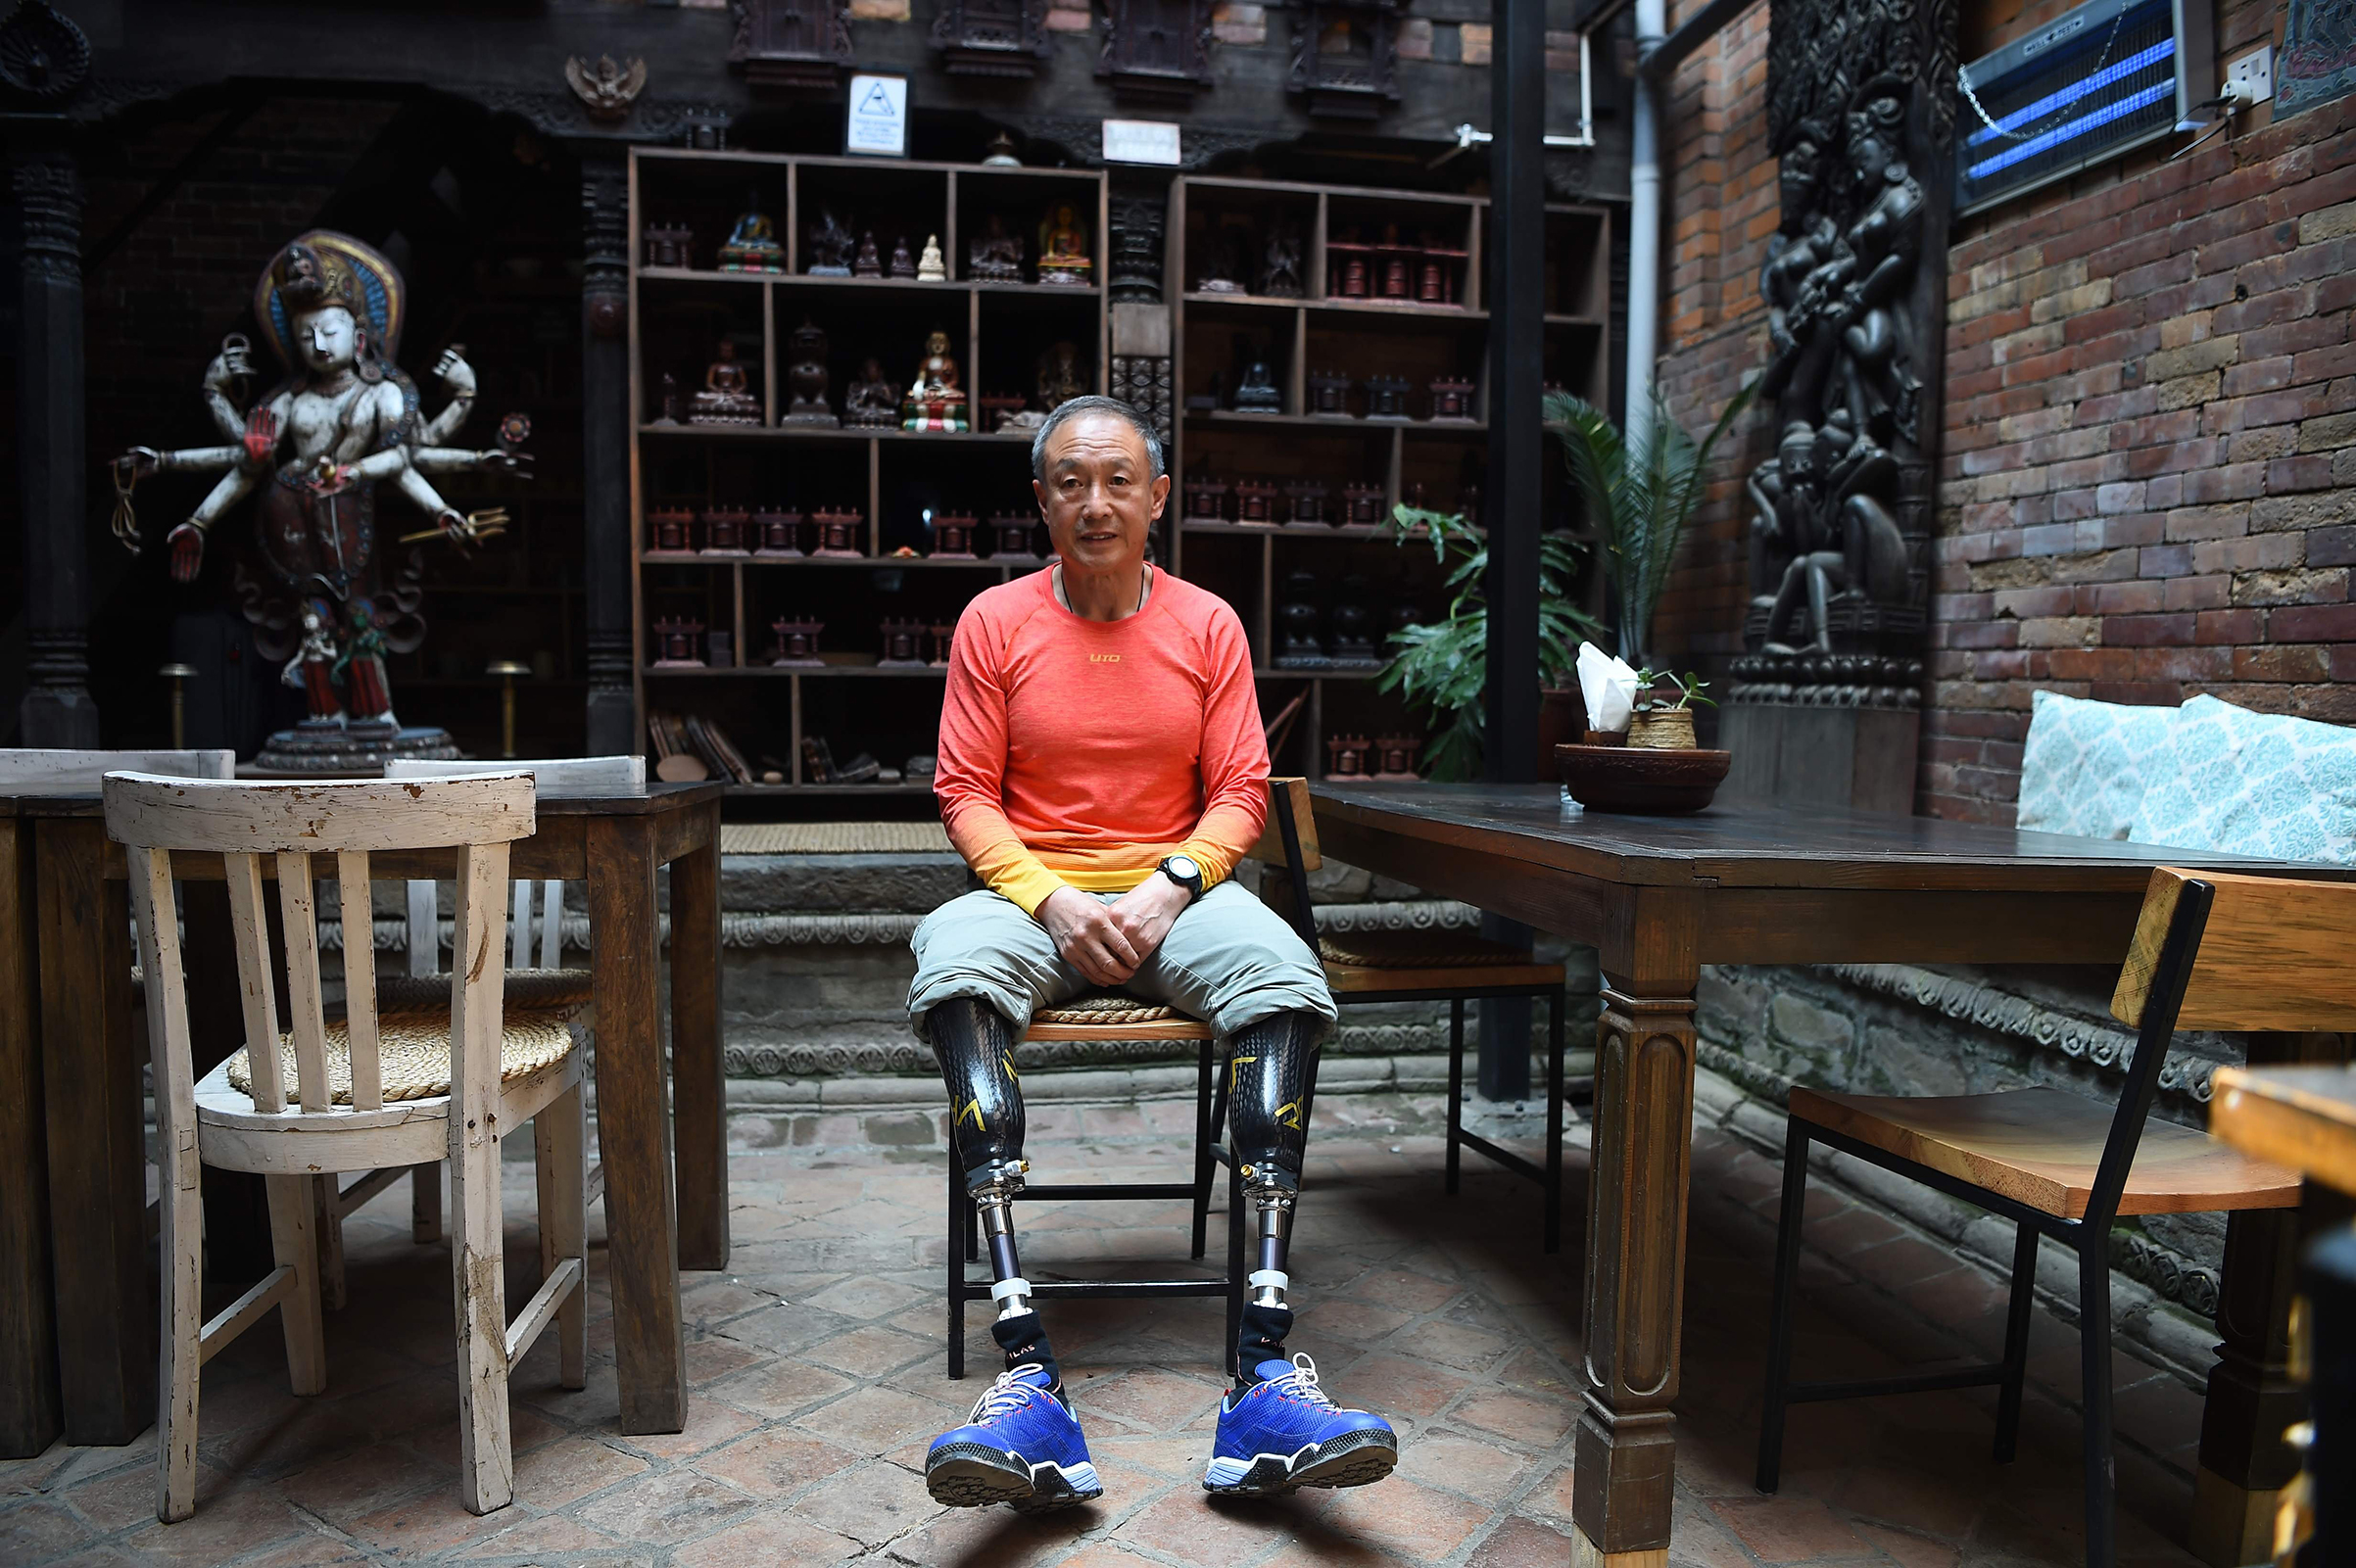 Chinese double amputee climber Xia Boyu, who lost both of his legs during first attempt to climb Everest, in Bhaktapur, Nepal, on April 4, 2018.